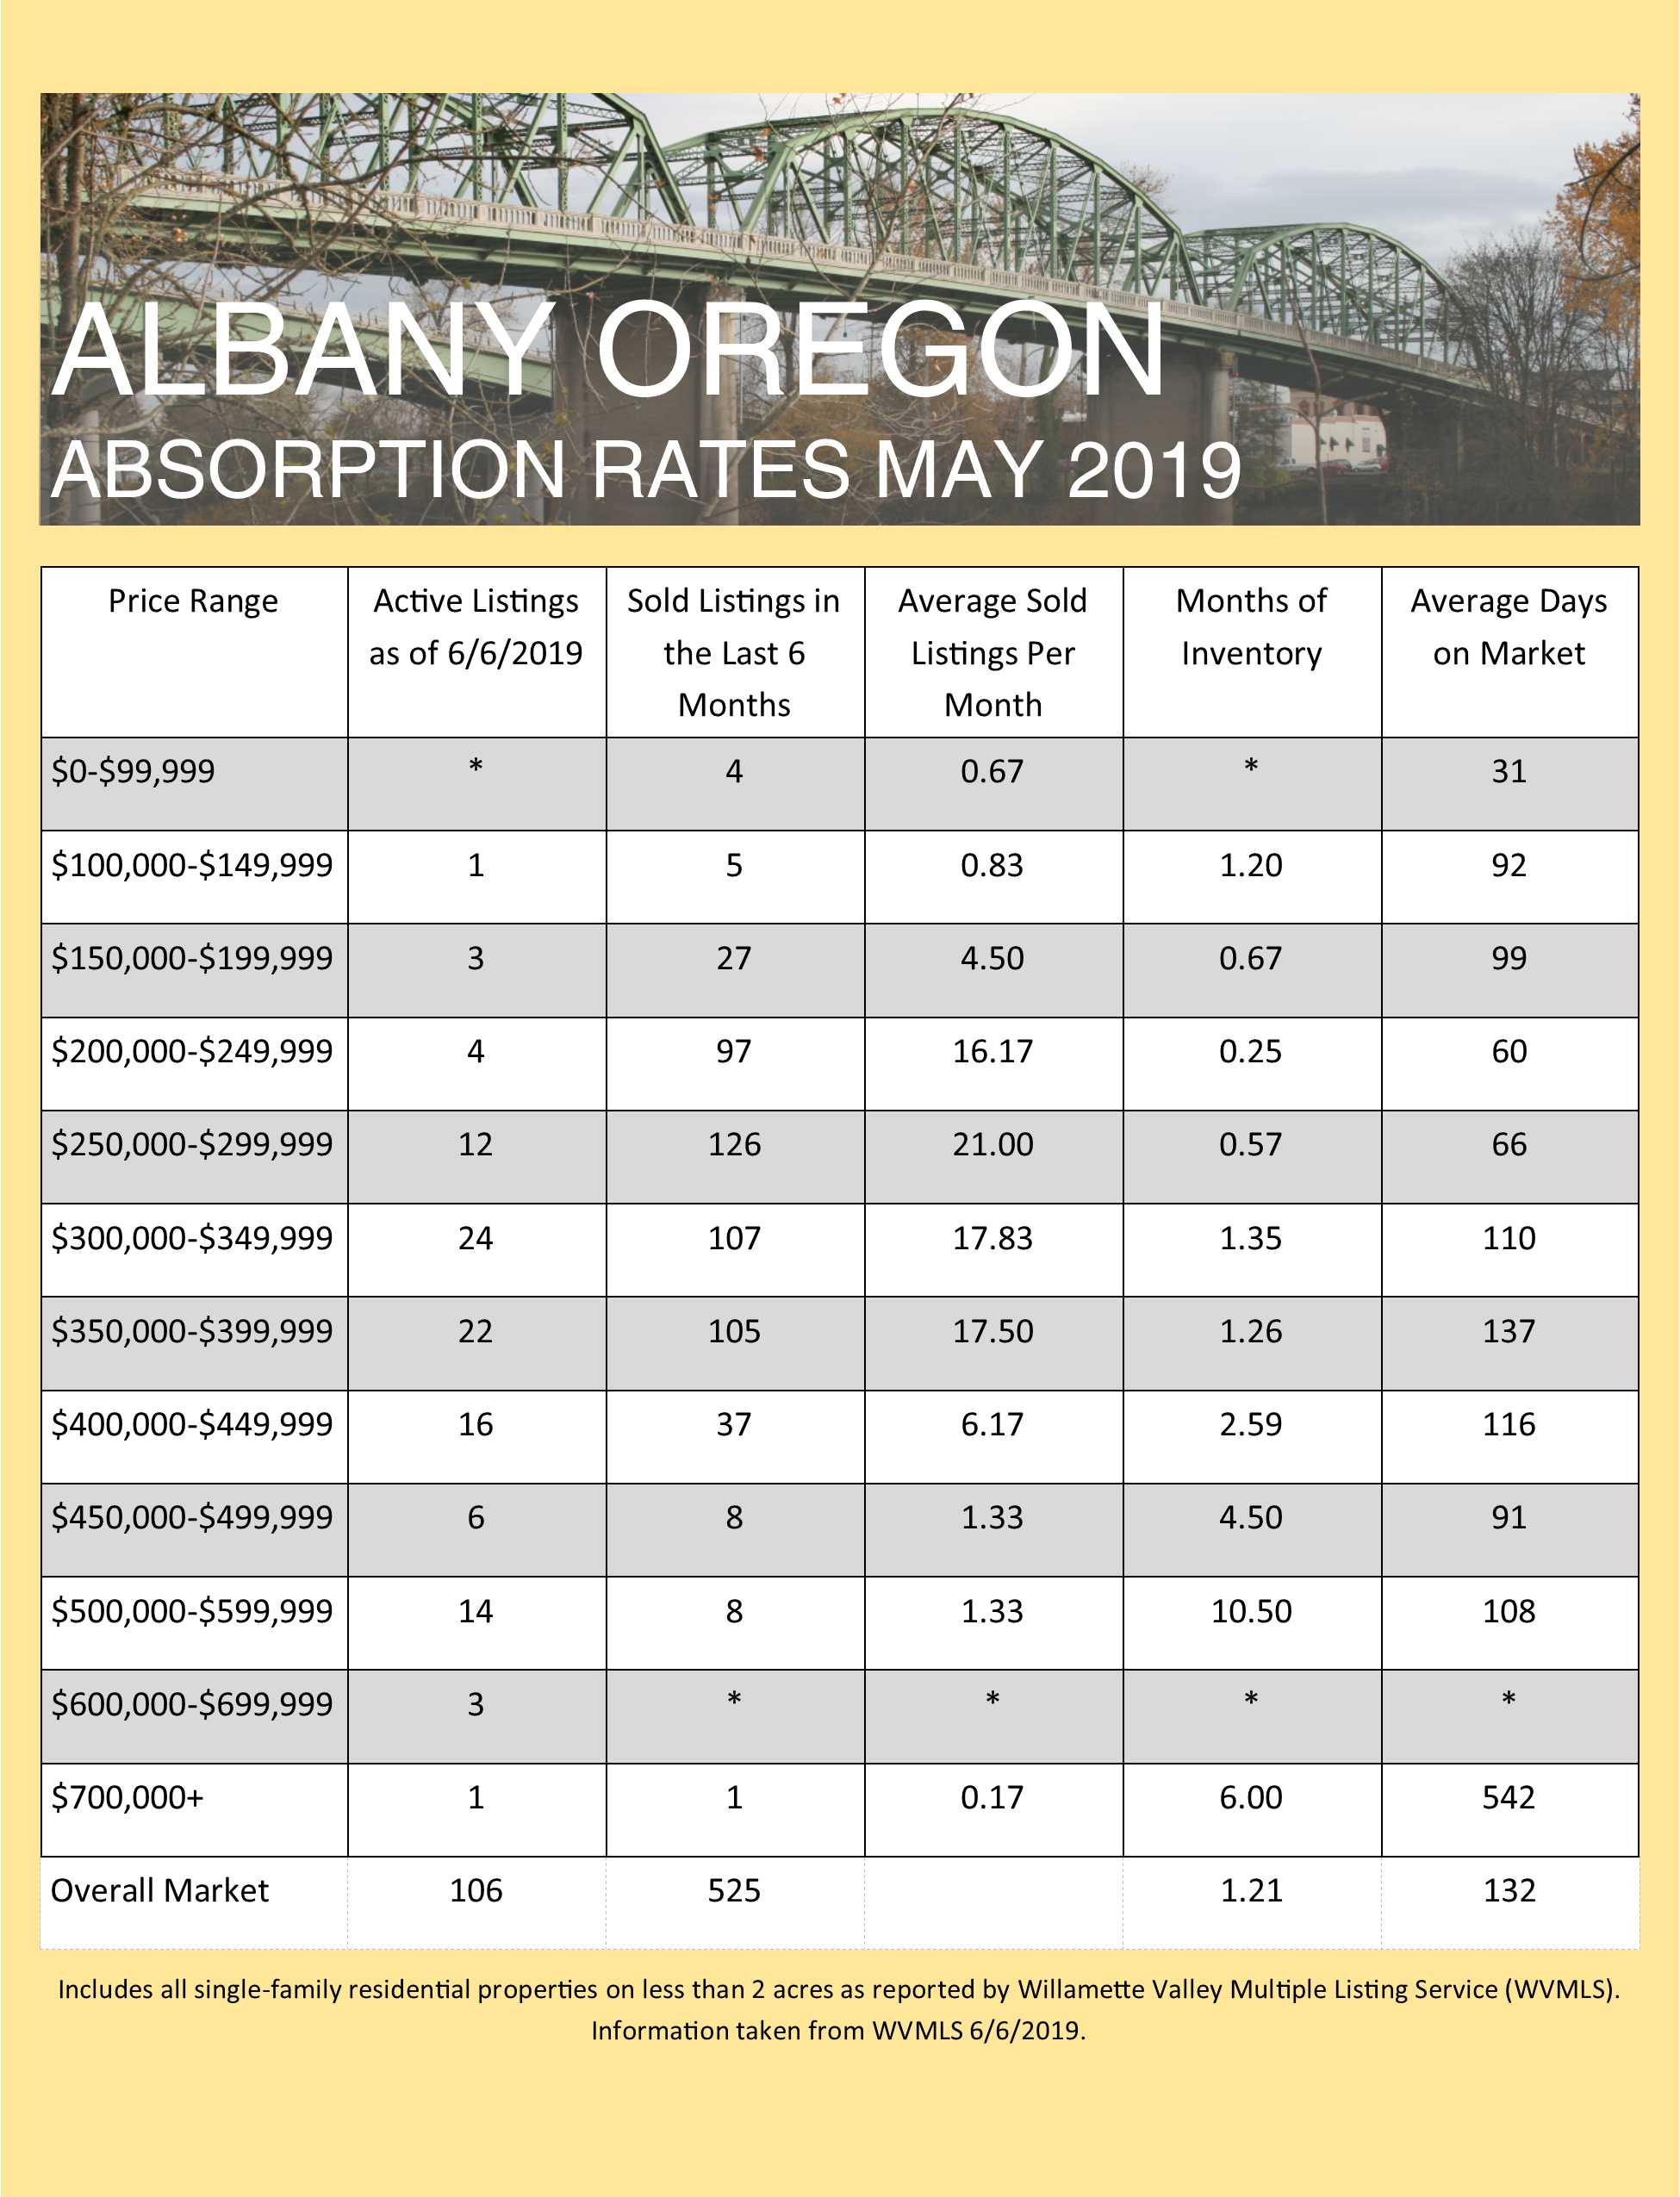 May 2019 Absorption Rates for Albany and Corvallis